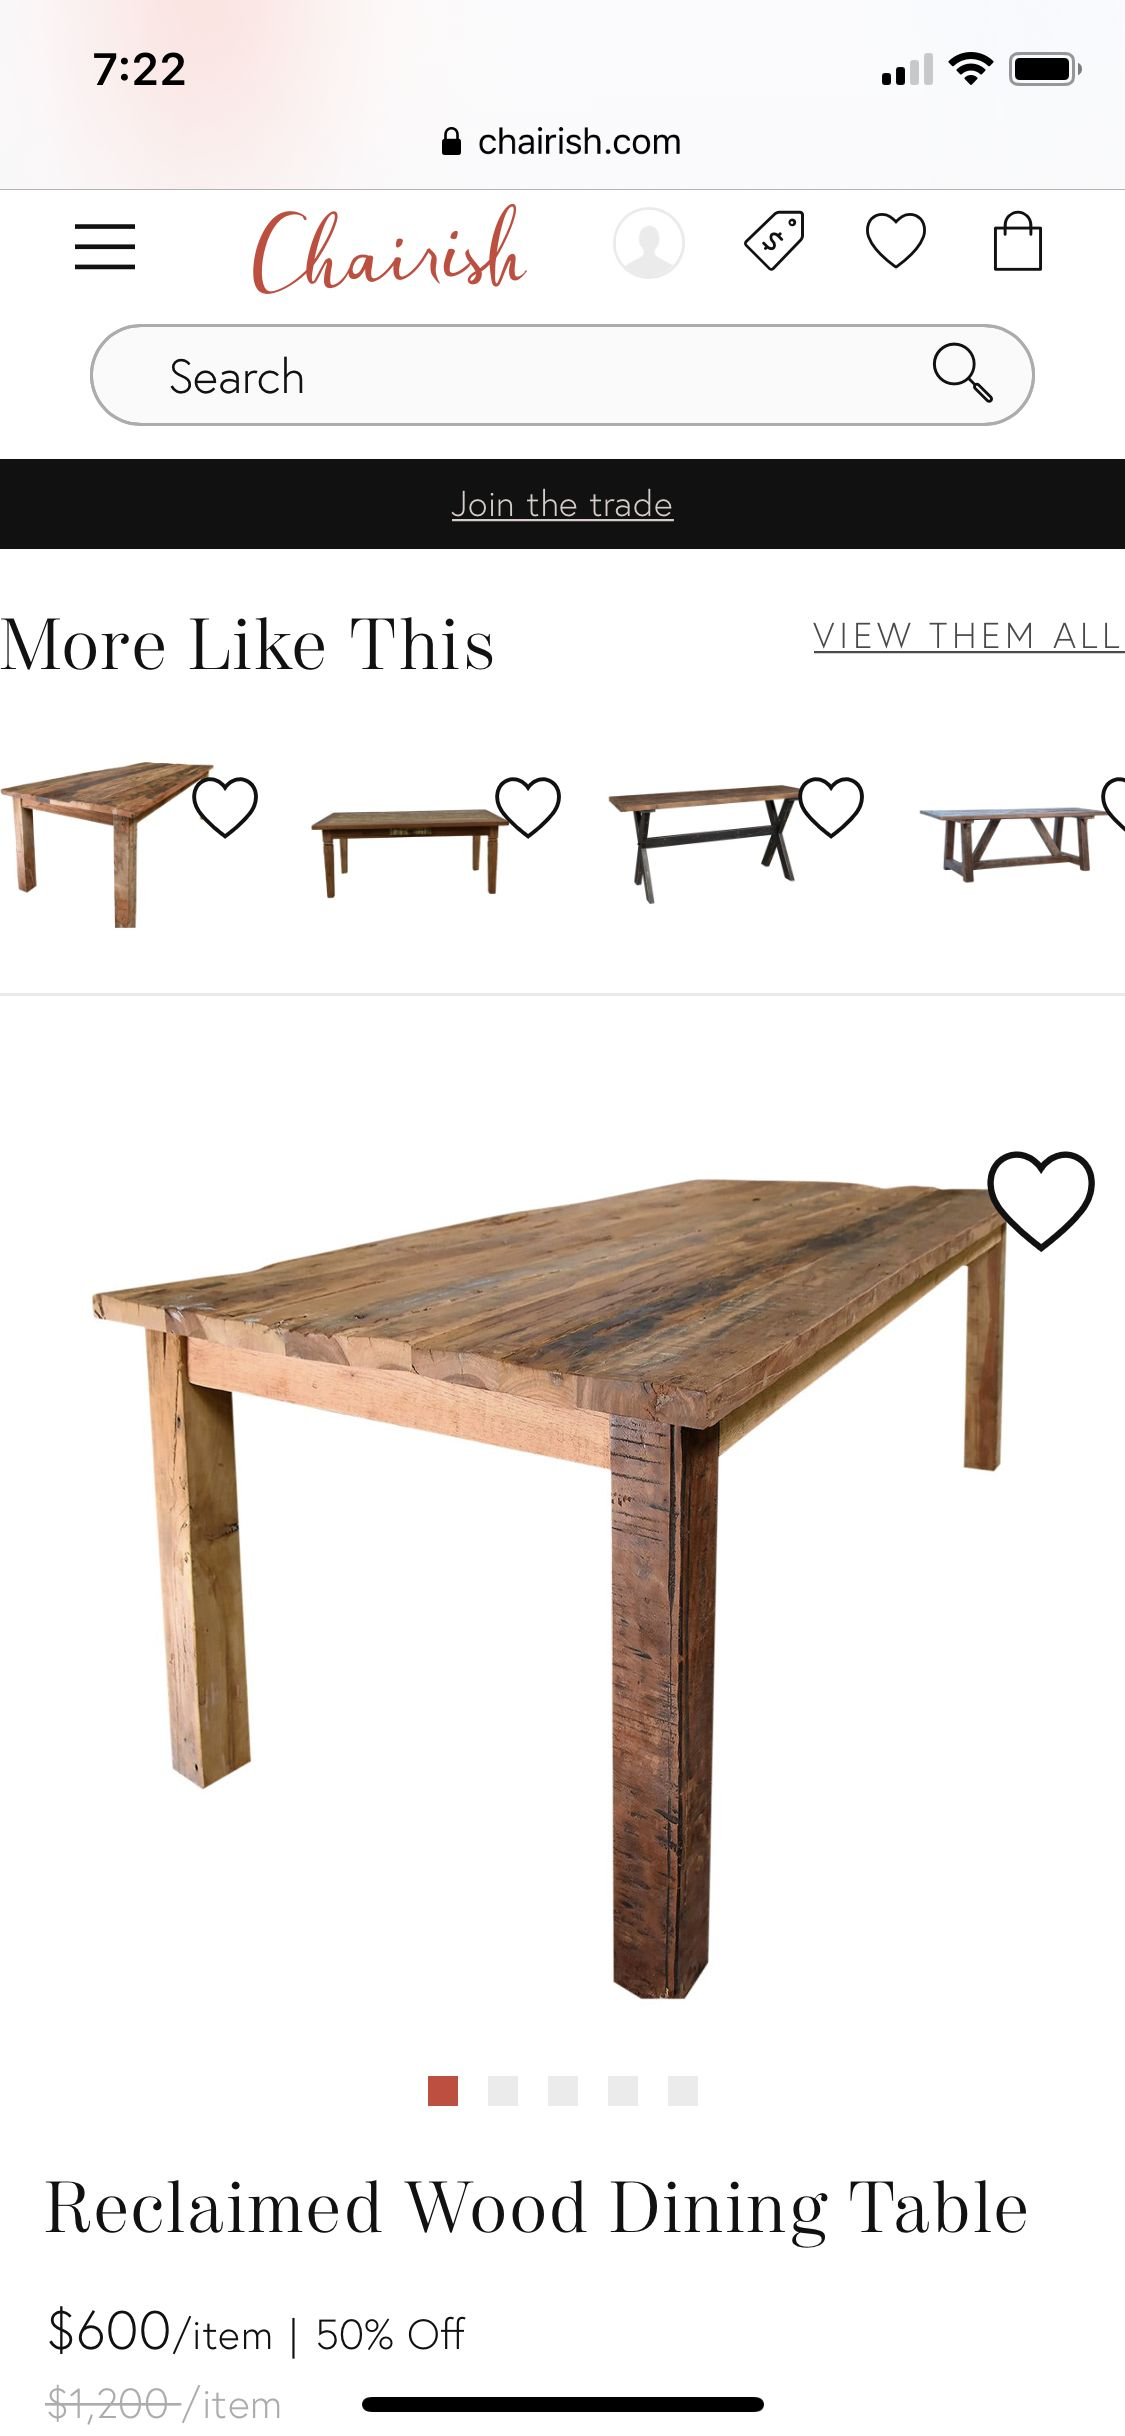 Pin By Sara Tady On For The Home In 2020 Reclaimed Wood Dining Table Wood Dining Table Dining Table